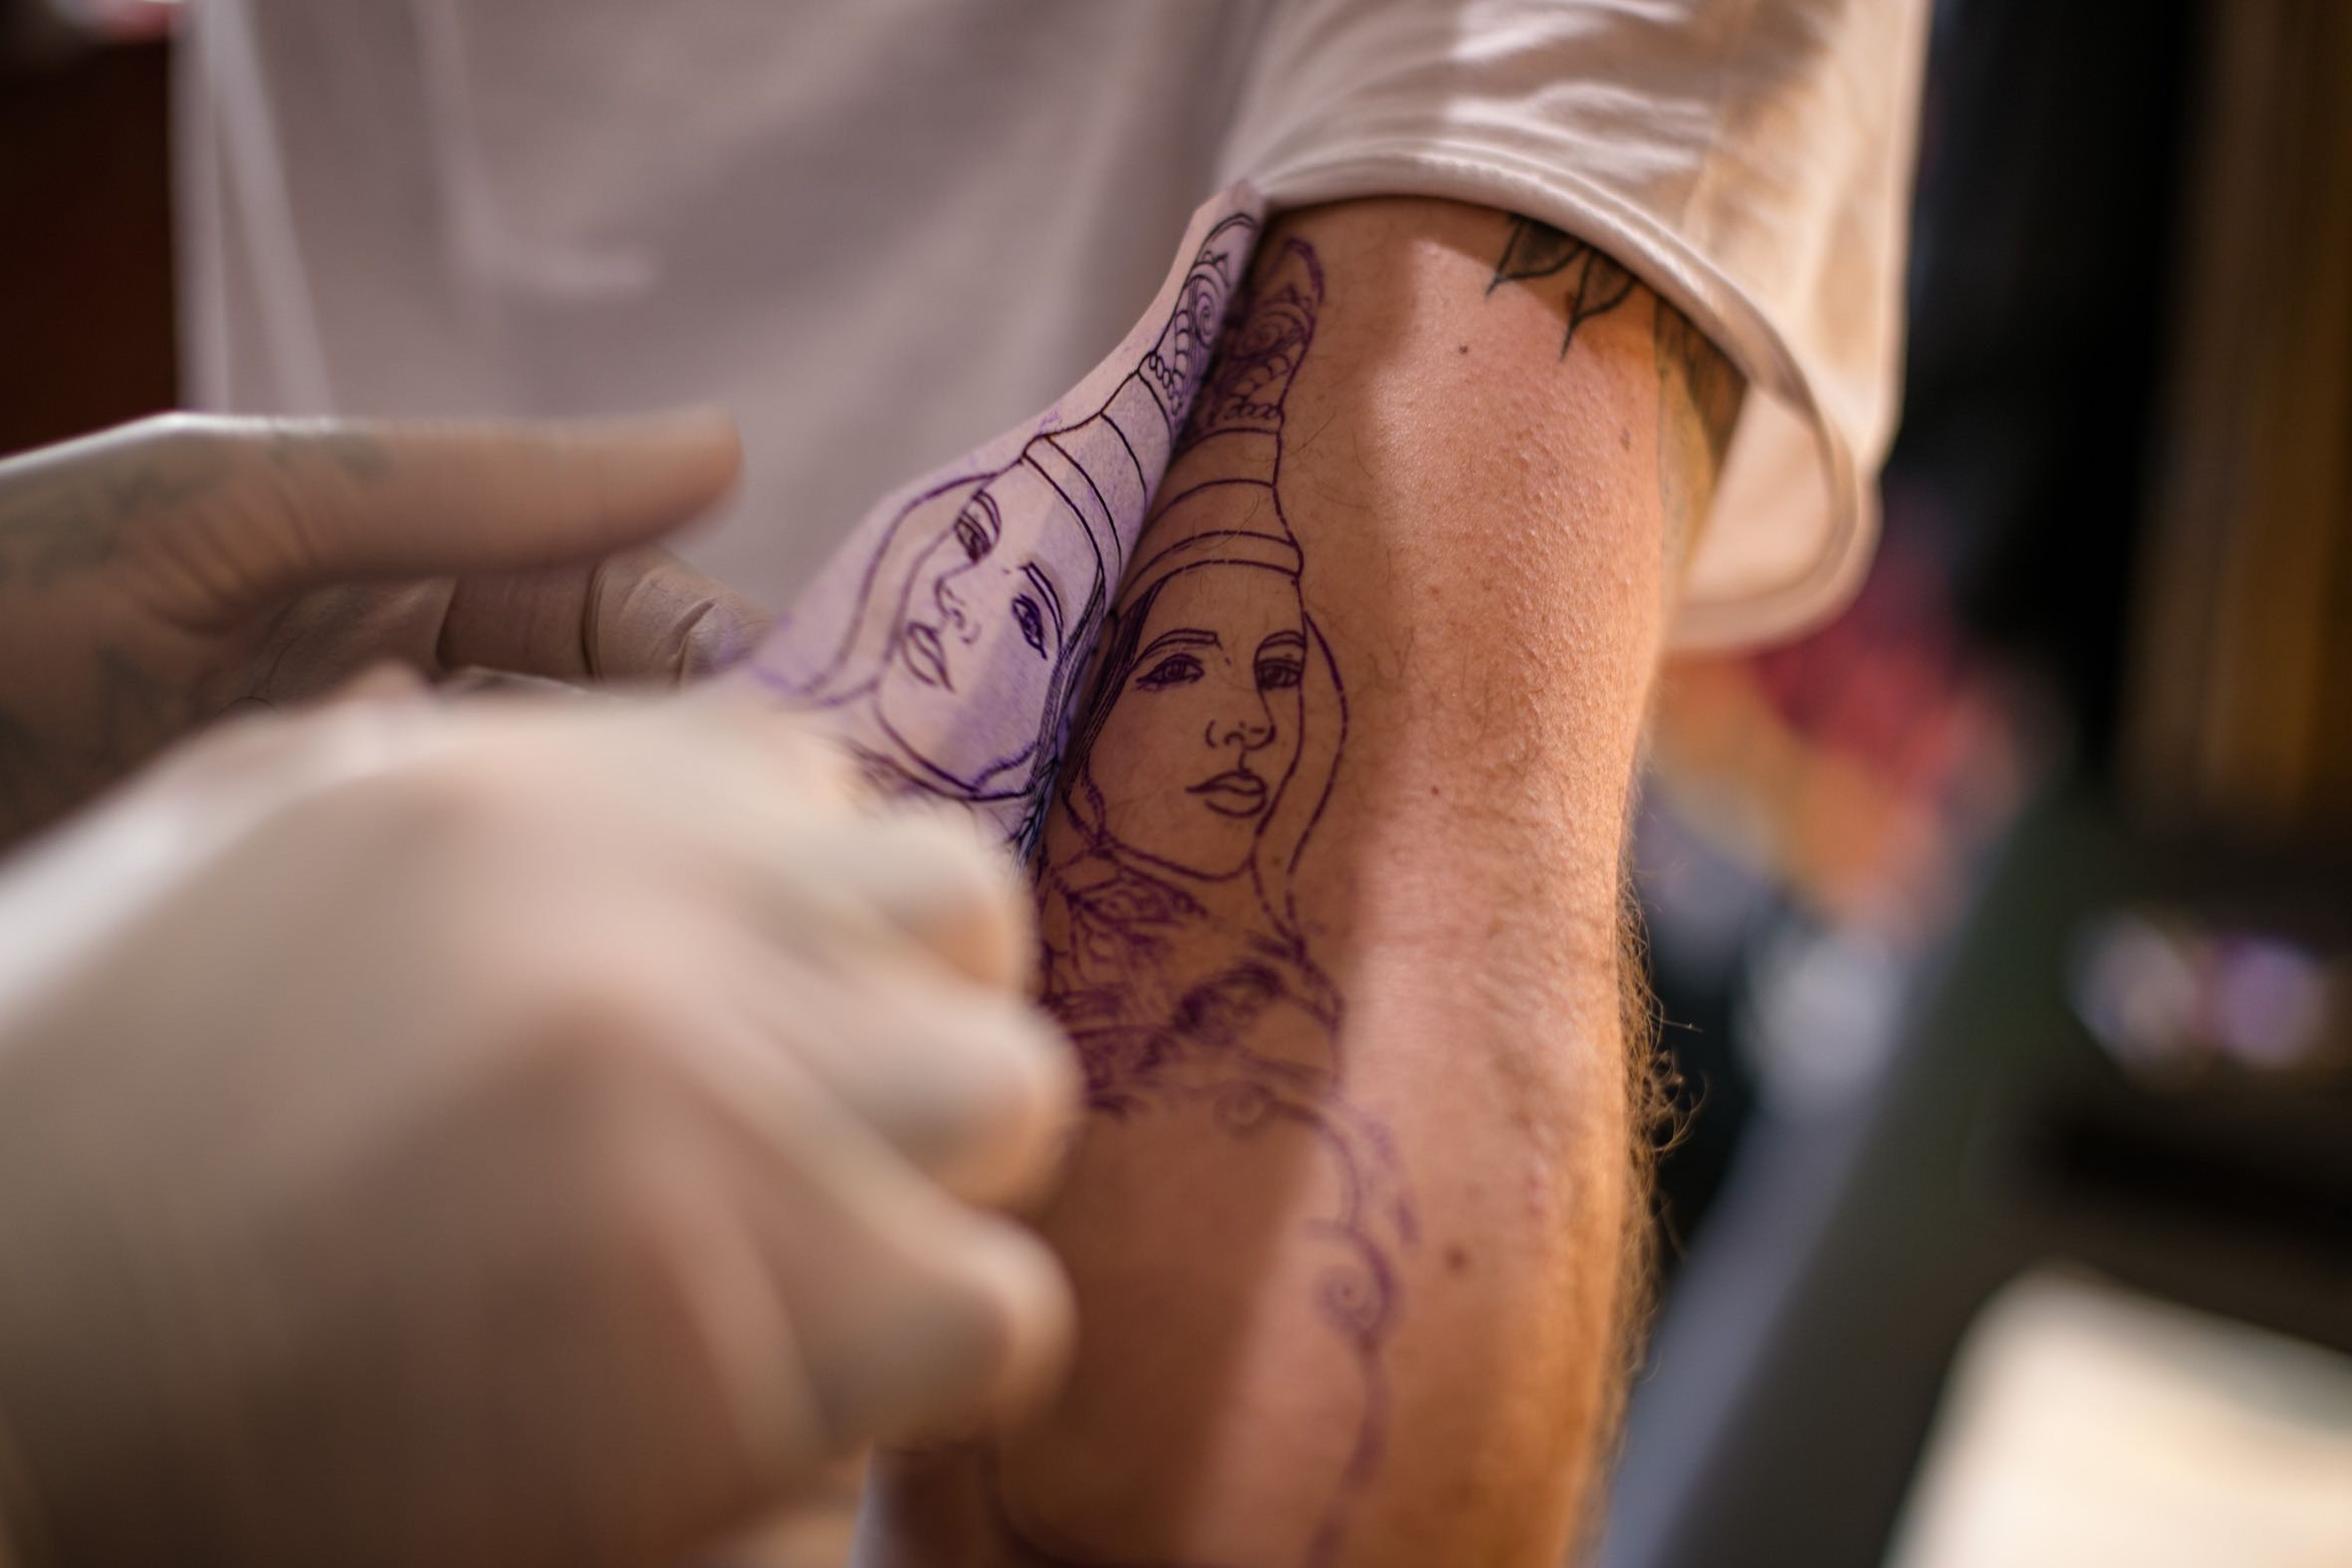 Interview with Duran Niemach about his tattoo artist career